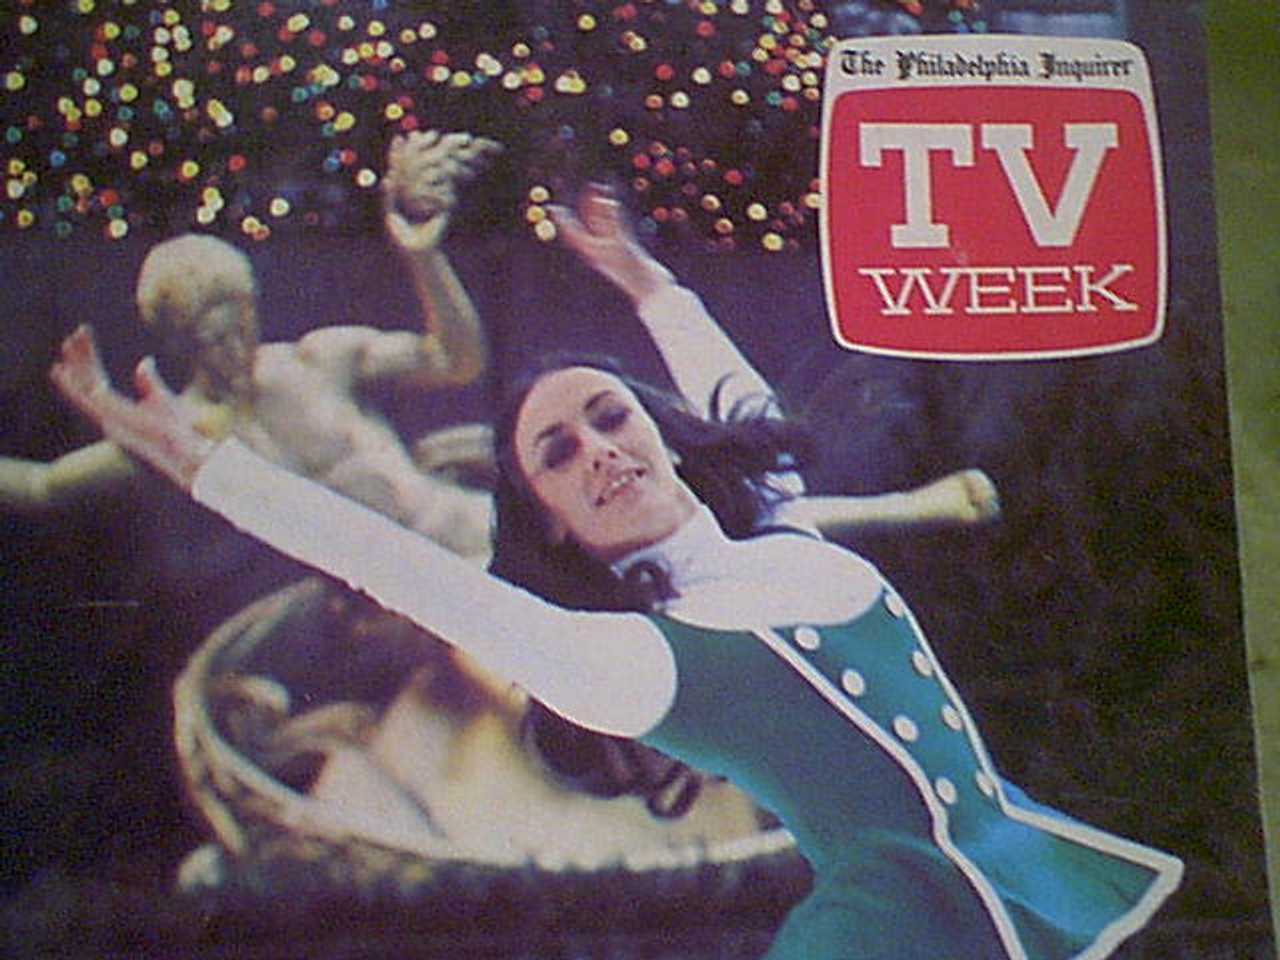 Fleming, Peggy TV Week 1972 Signed Autograph Color Cover Photo Ice Skating